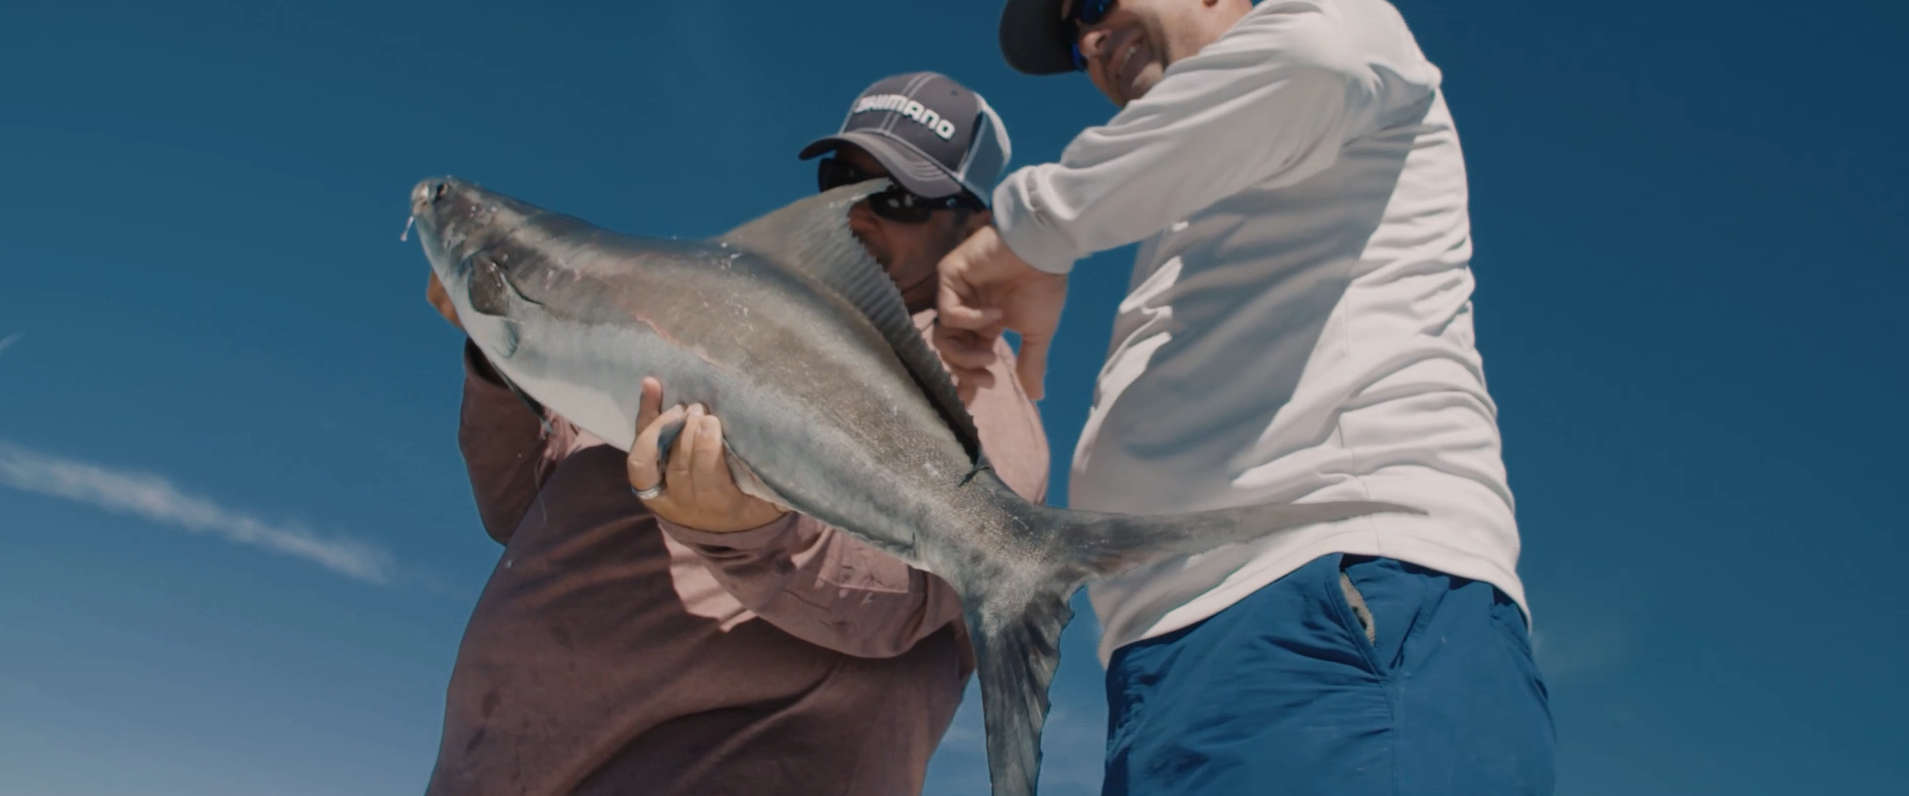 Jeremy-Withers-Jeremy-Lee-Full-Moon-Guidelines-Fishing-for-Cobia-Waypoint-tv